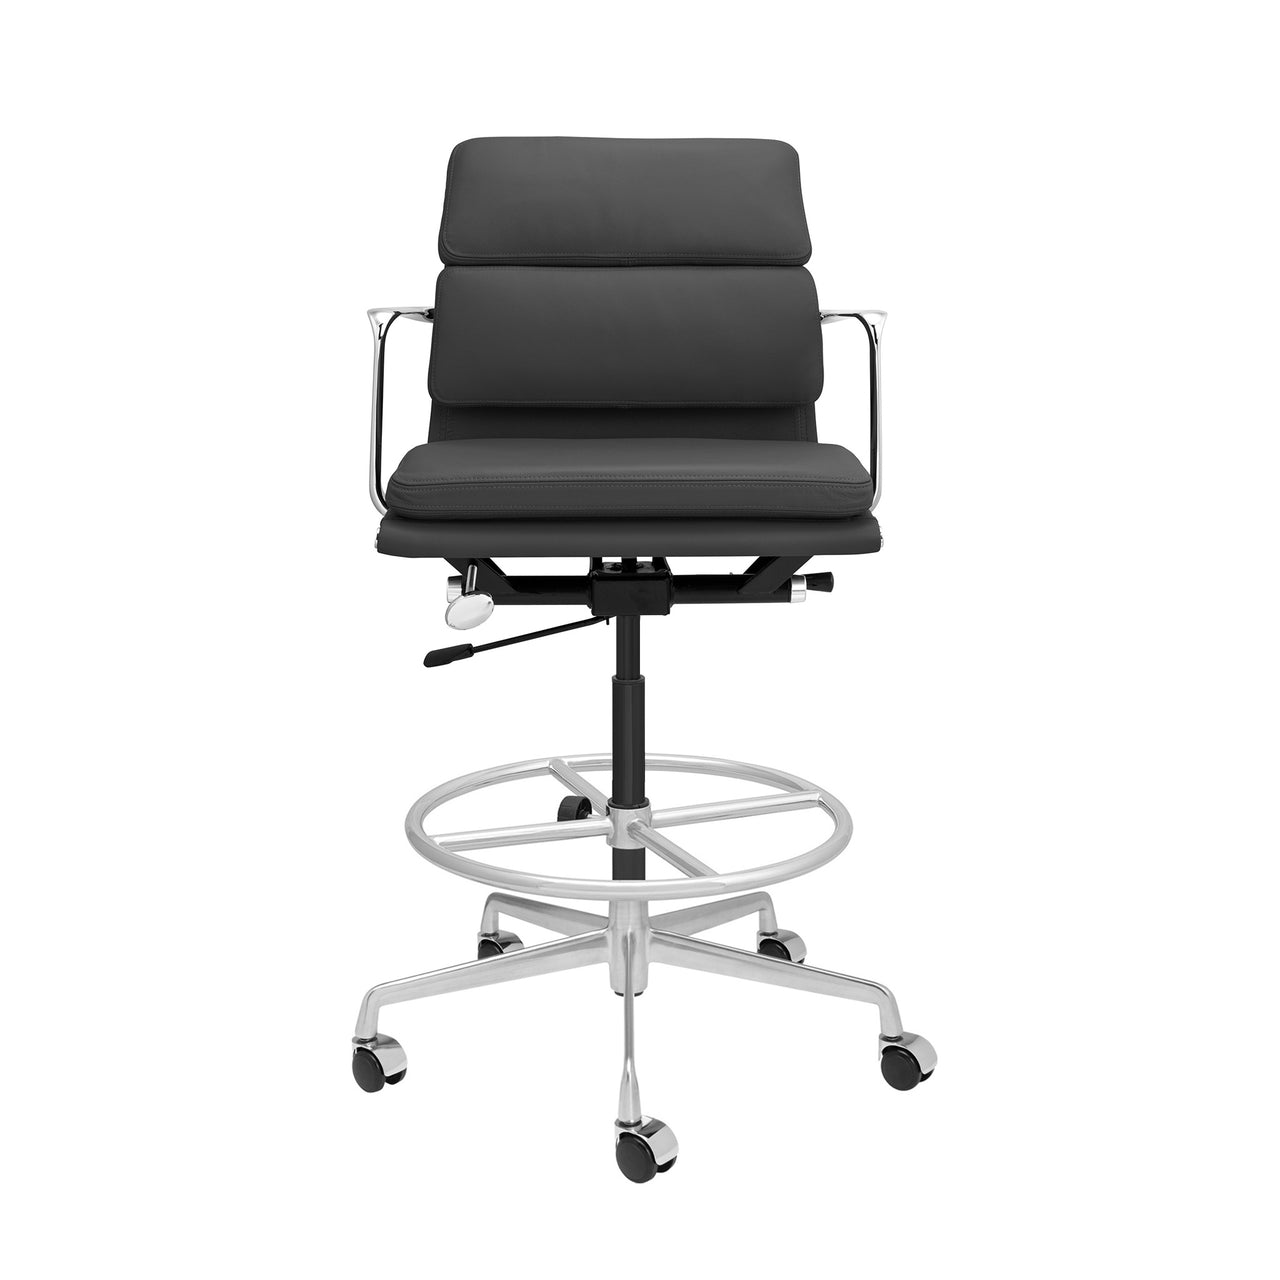 SOHO Pro Soft Pad Drafting Chair (Dark Grey Italian Leather)